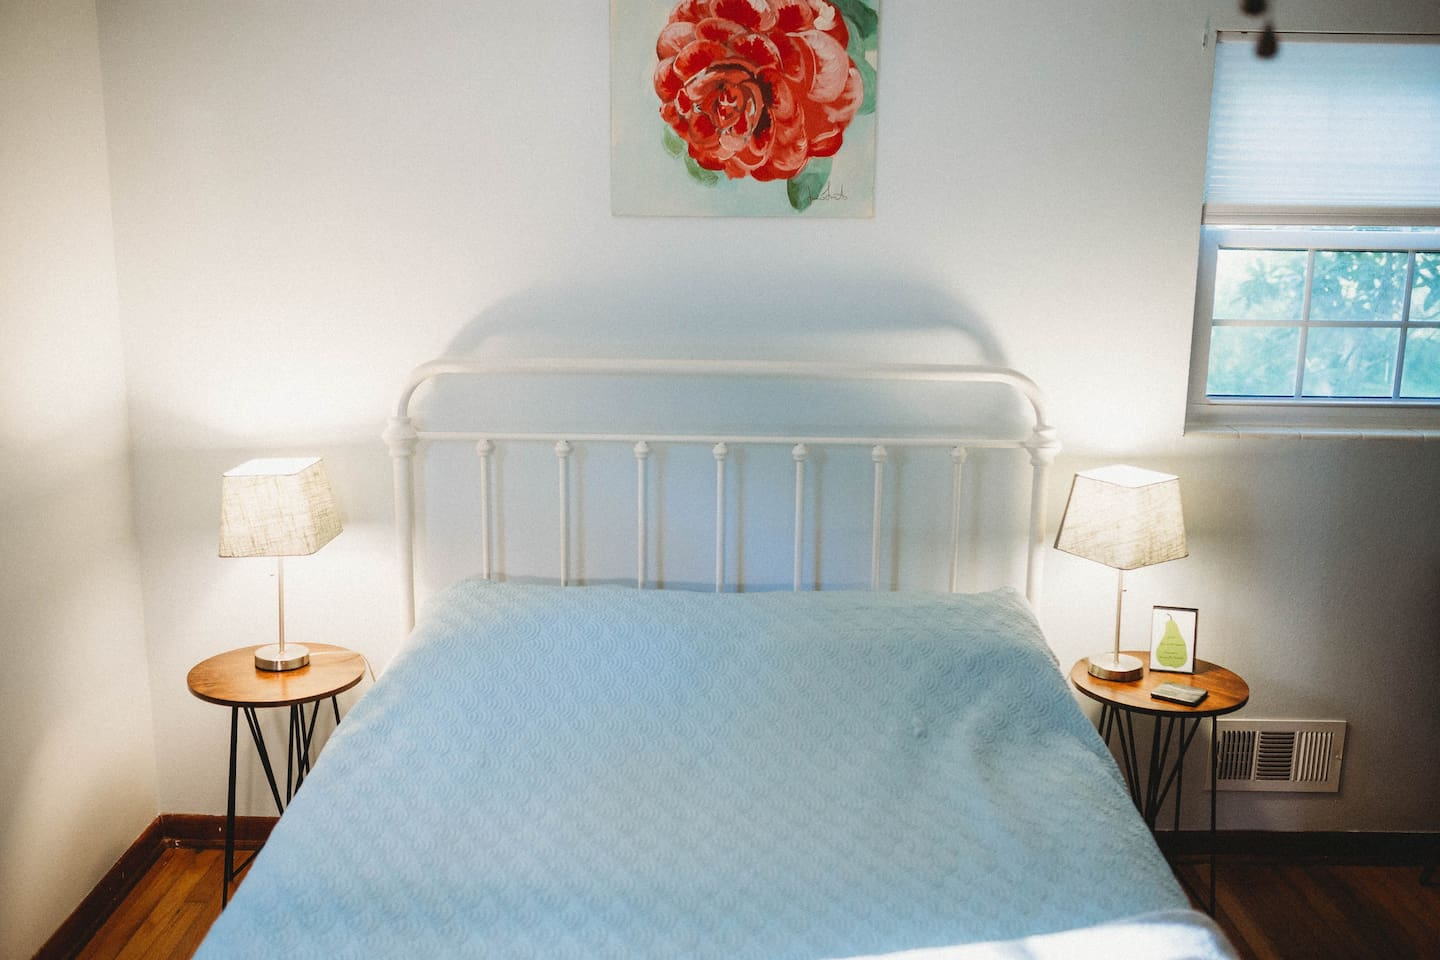 Here is a shot of your bed. Notice the camellia painting my friend painted above the bed? Our property has several camellia bushes in a variety of colors, and you'll see a lovely red one outside your bathroom window.